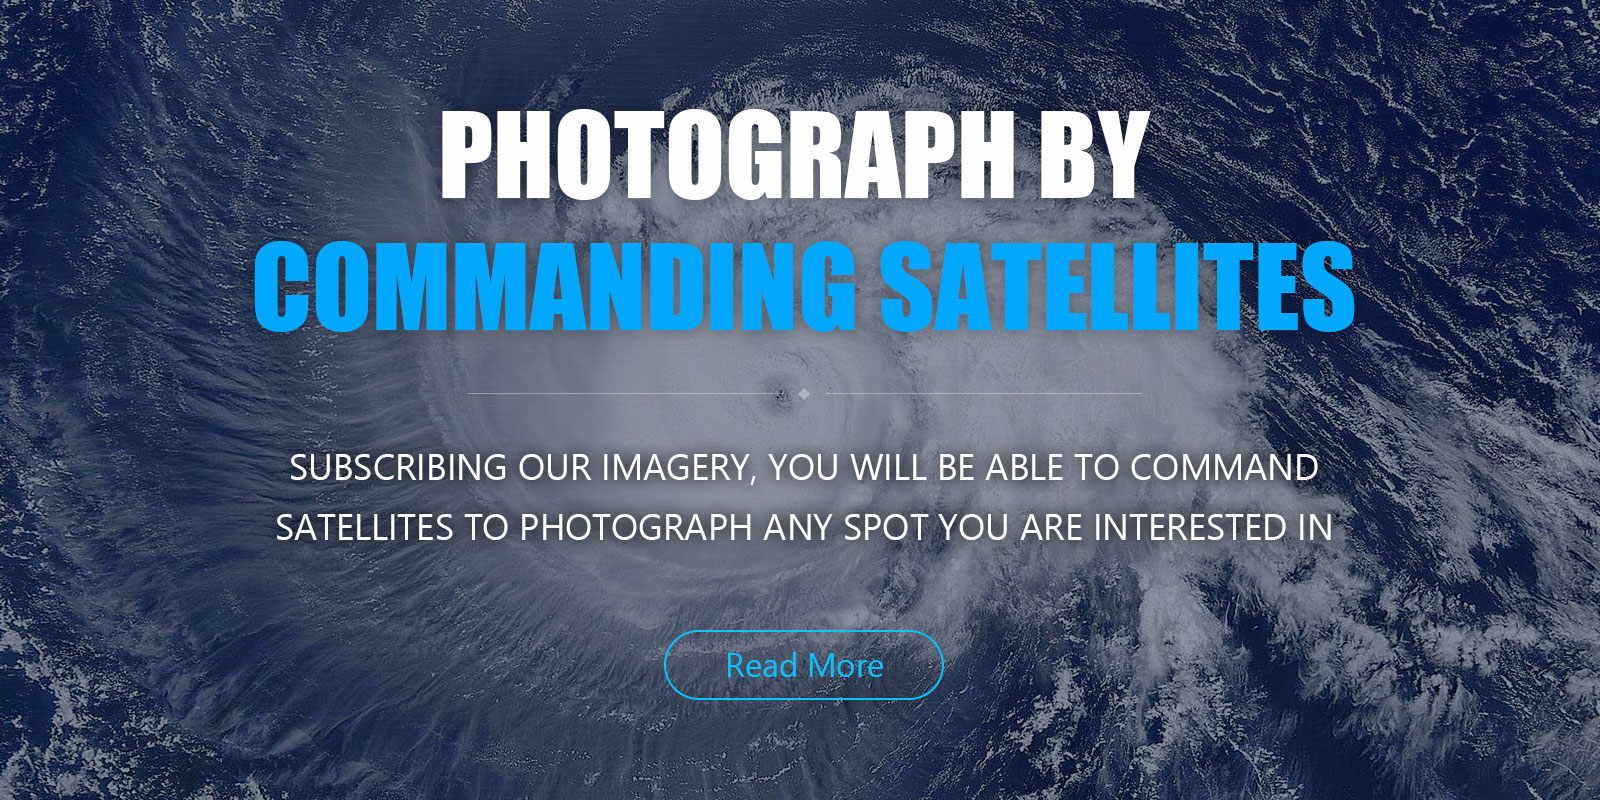 subscribe our imagery,you will be able to command the satellites